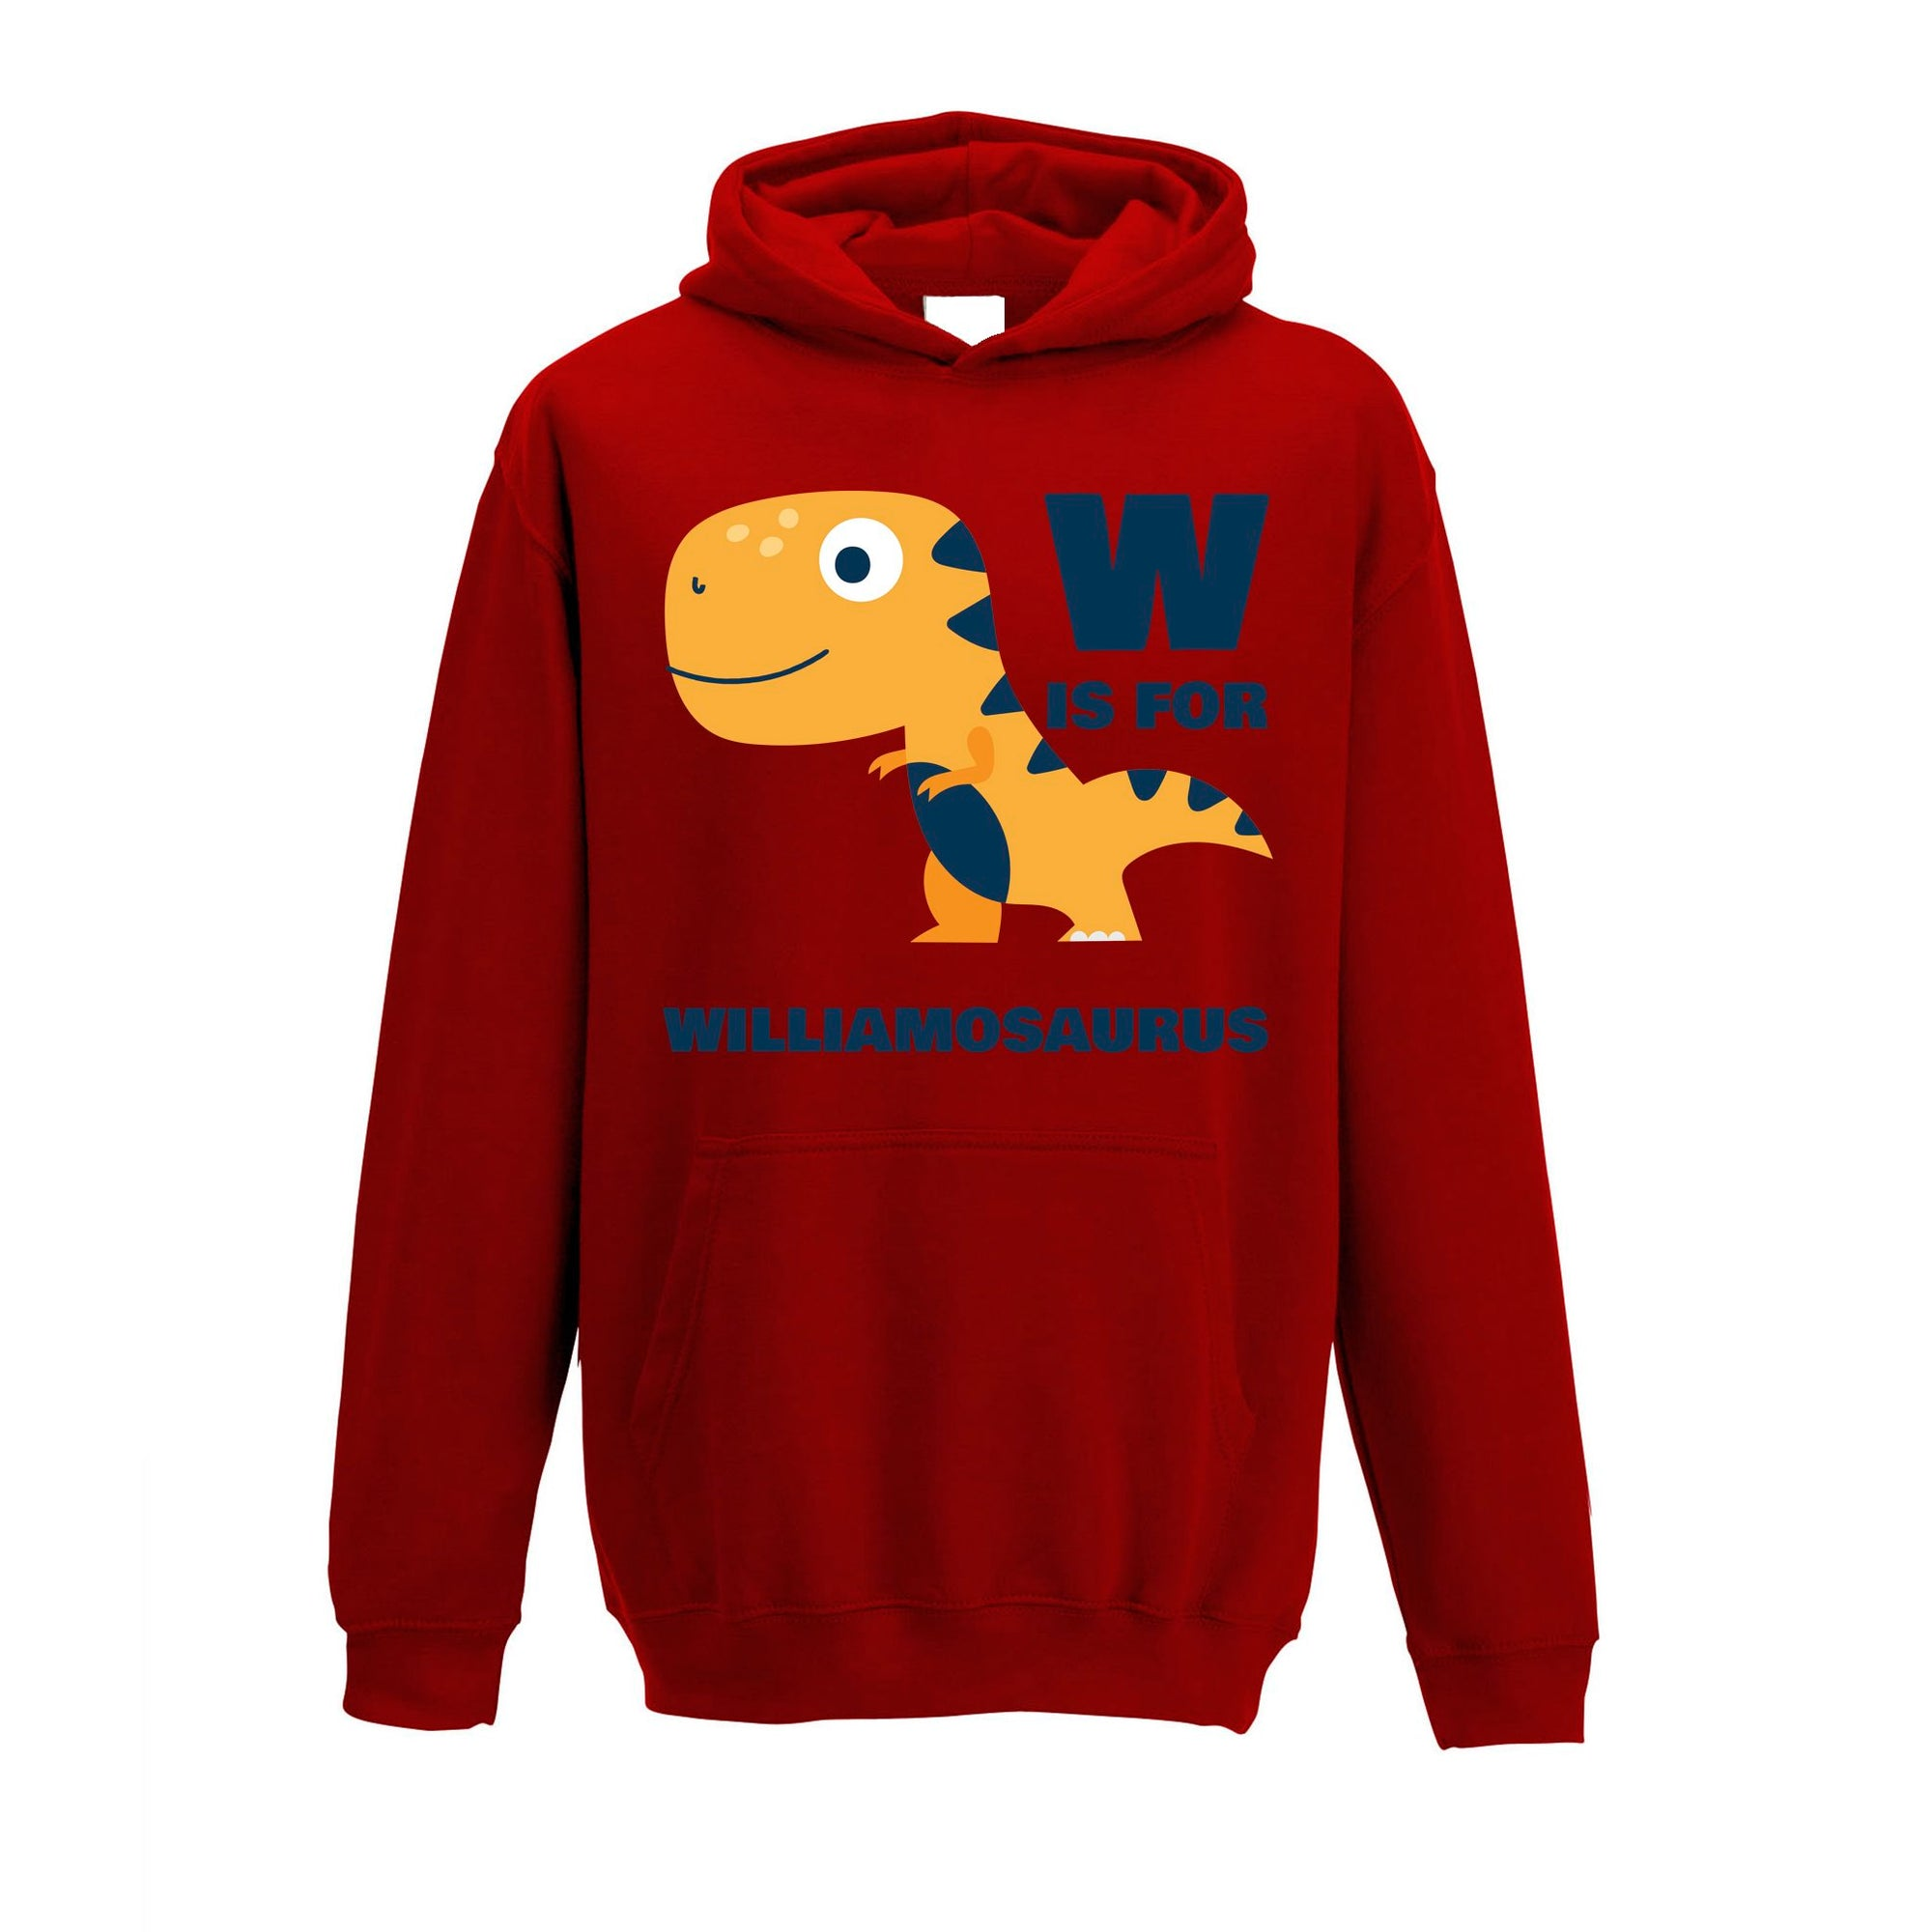 Dinosaur Kids Hoodie William Saurus Birth Name Childs